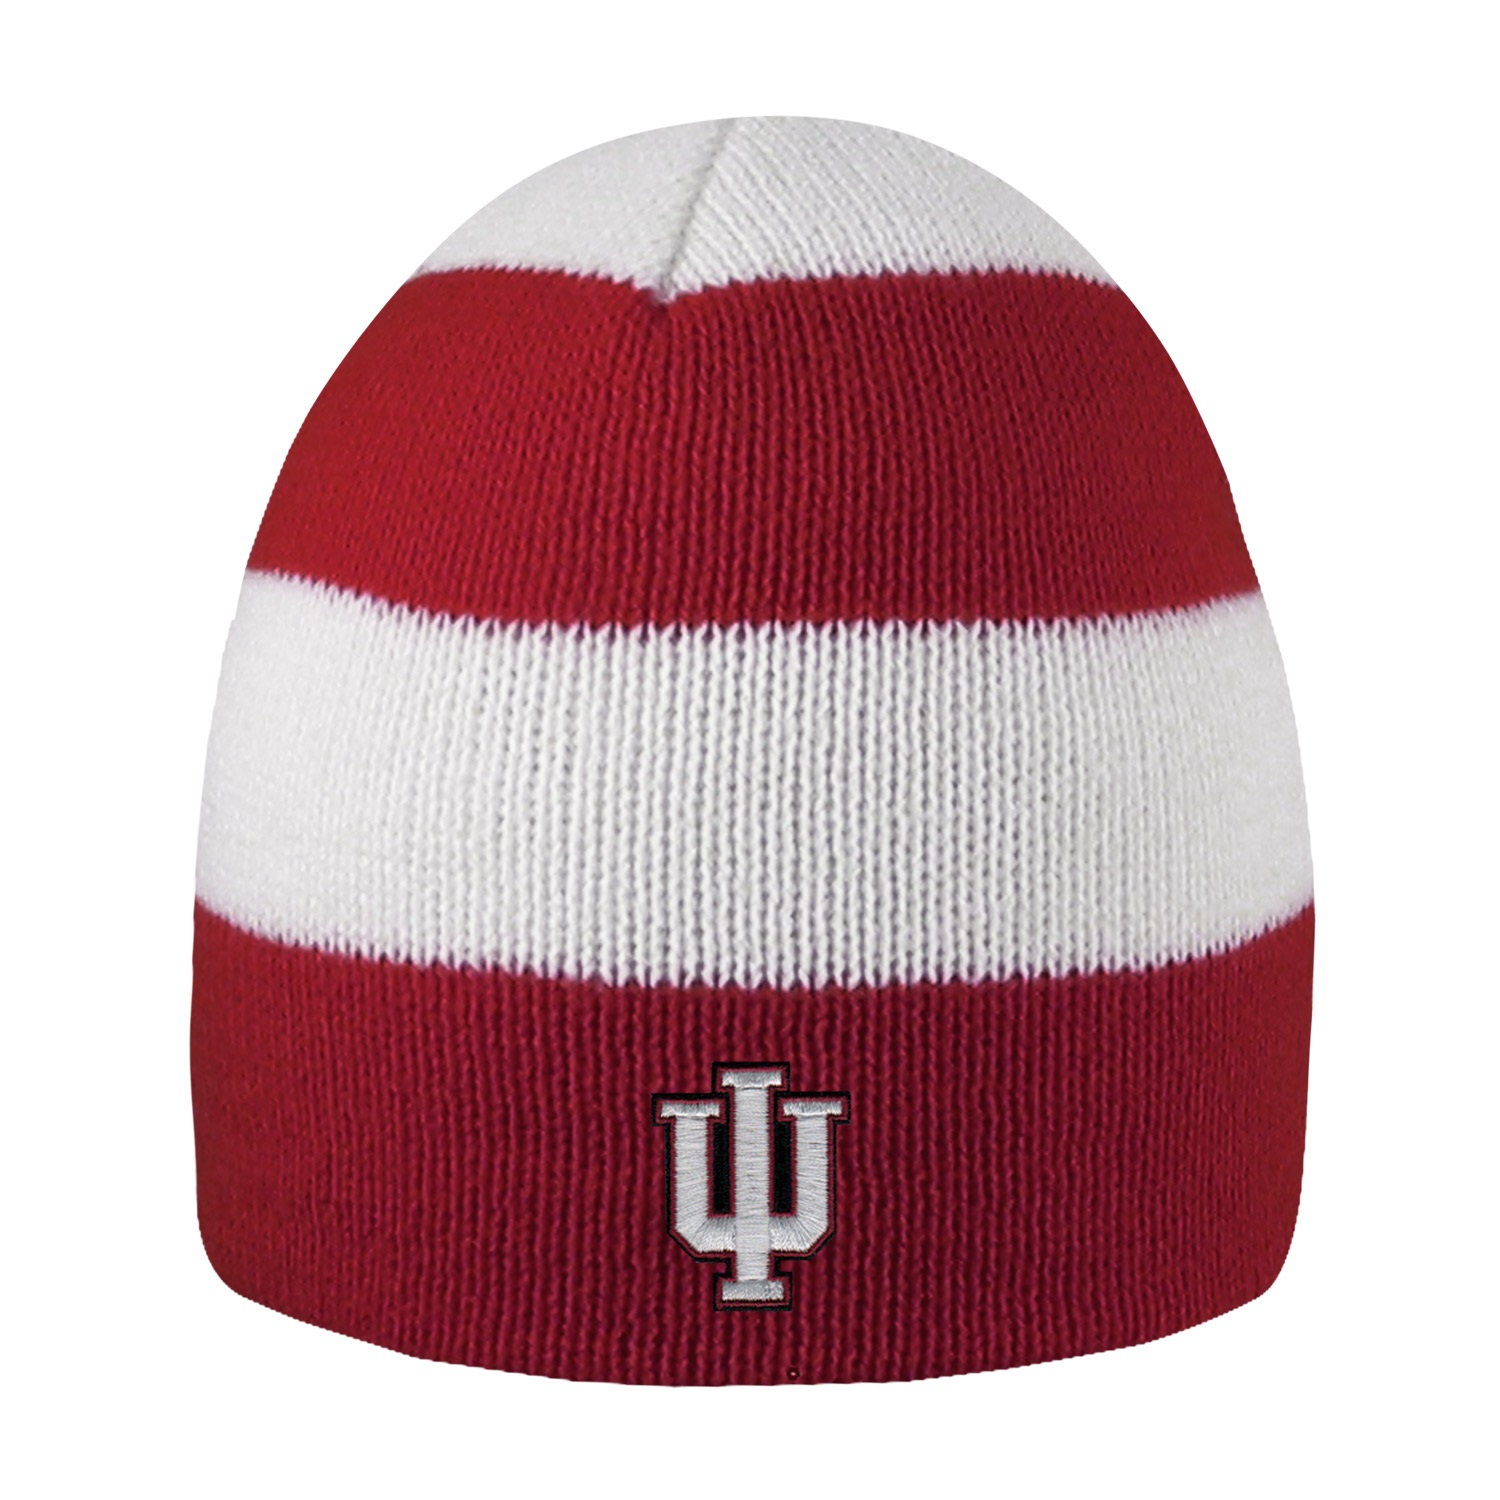 Indiana University Rugby Striped Knit Beanie